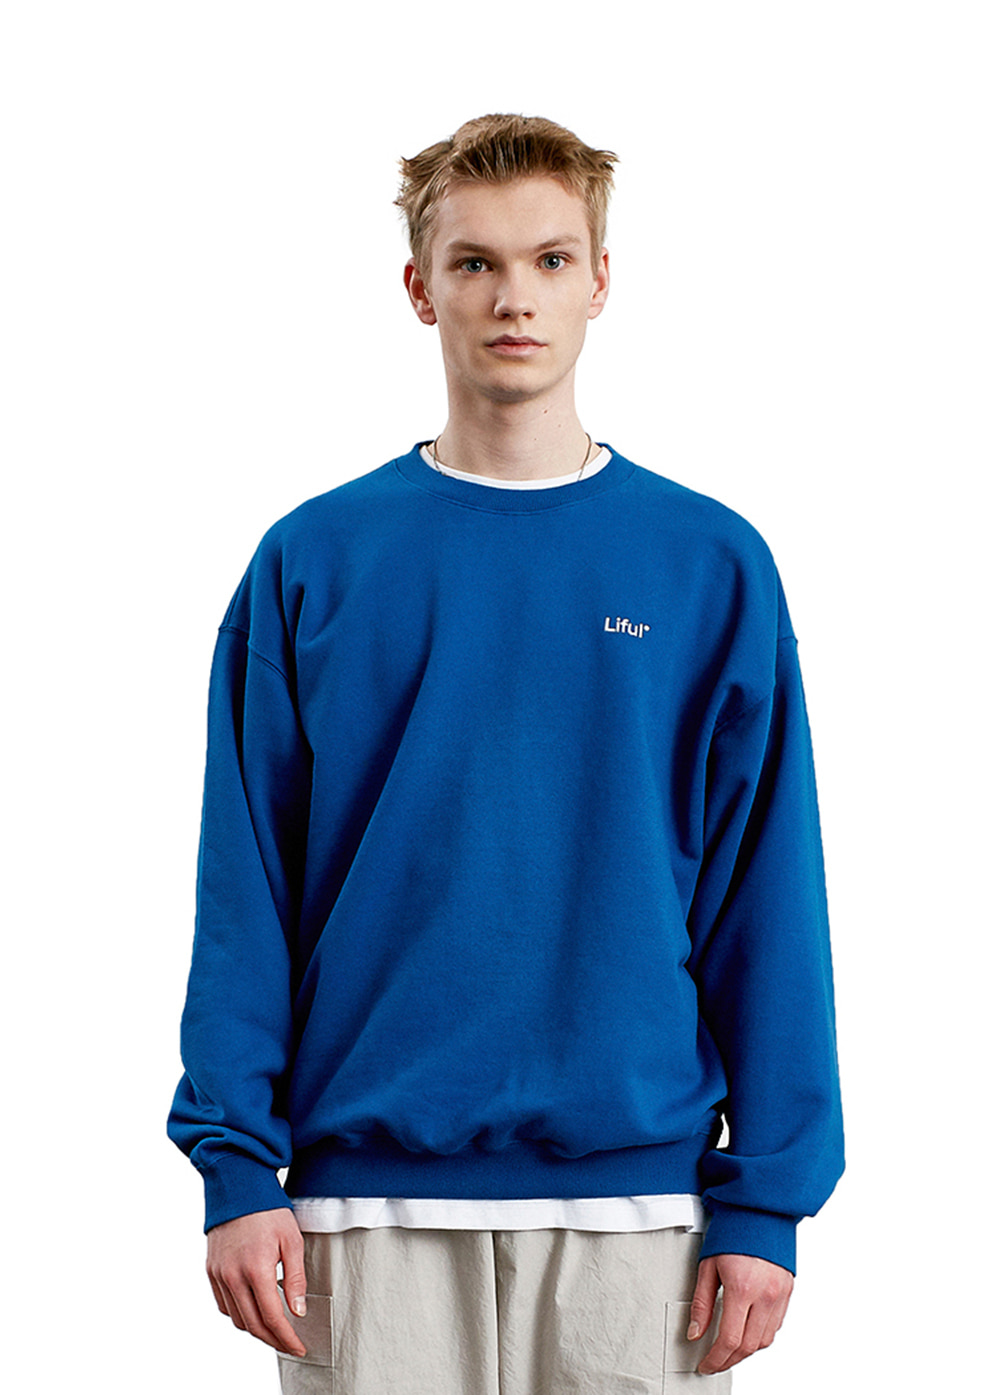 LIFUL LOGO SWEATSHIRT blue